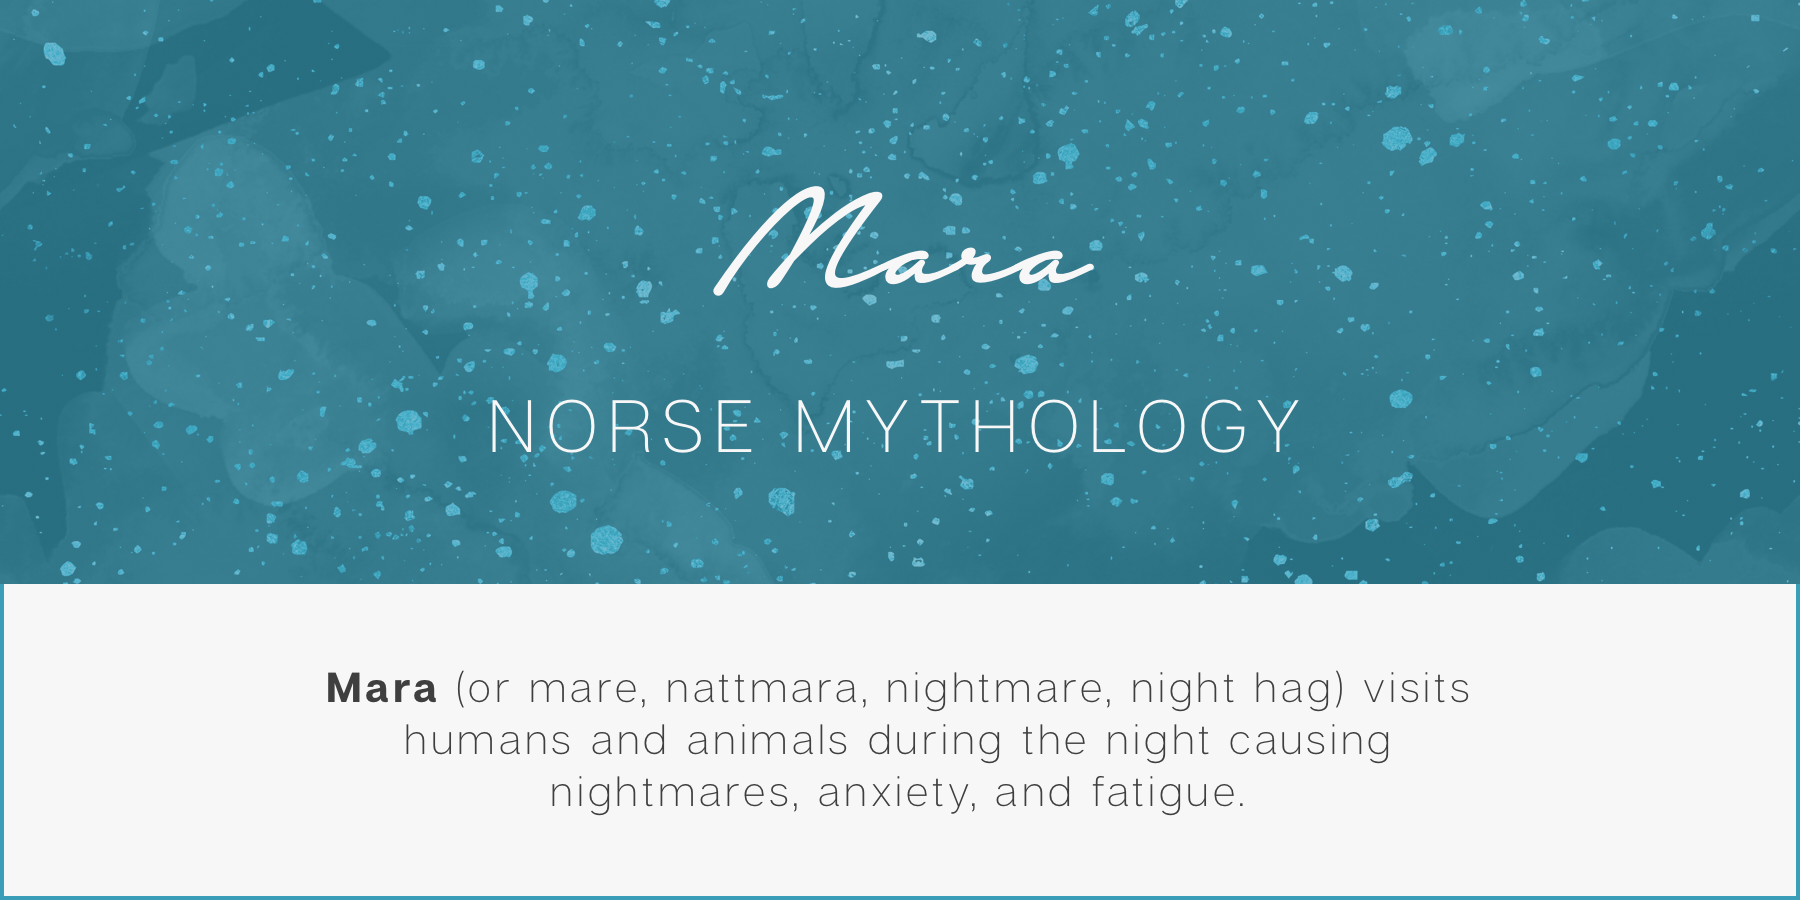 Mara (Nordic folklore) - Mara (or mare, nattmara, nightmare) visits humans and animals during the night bringing nightmares, anxiety, and fatigue with them.